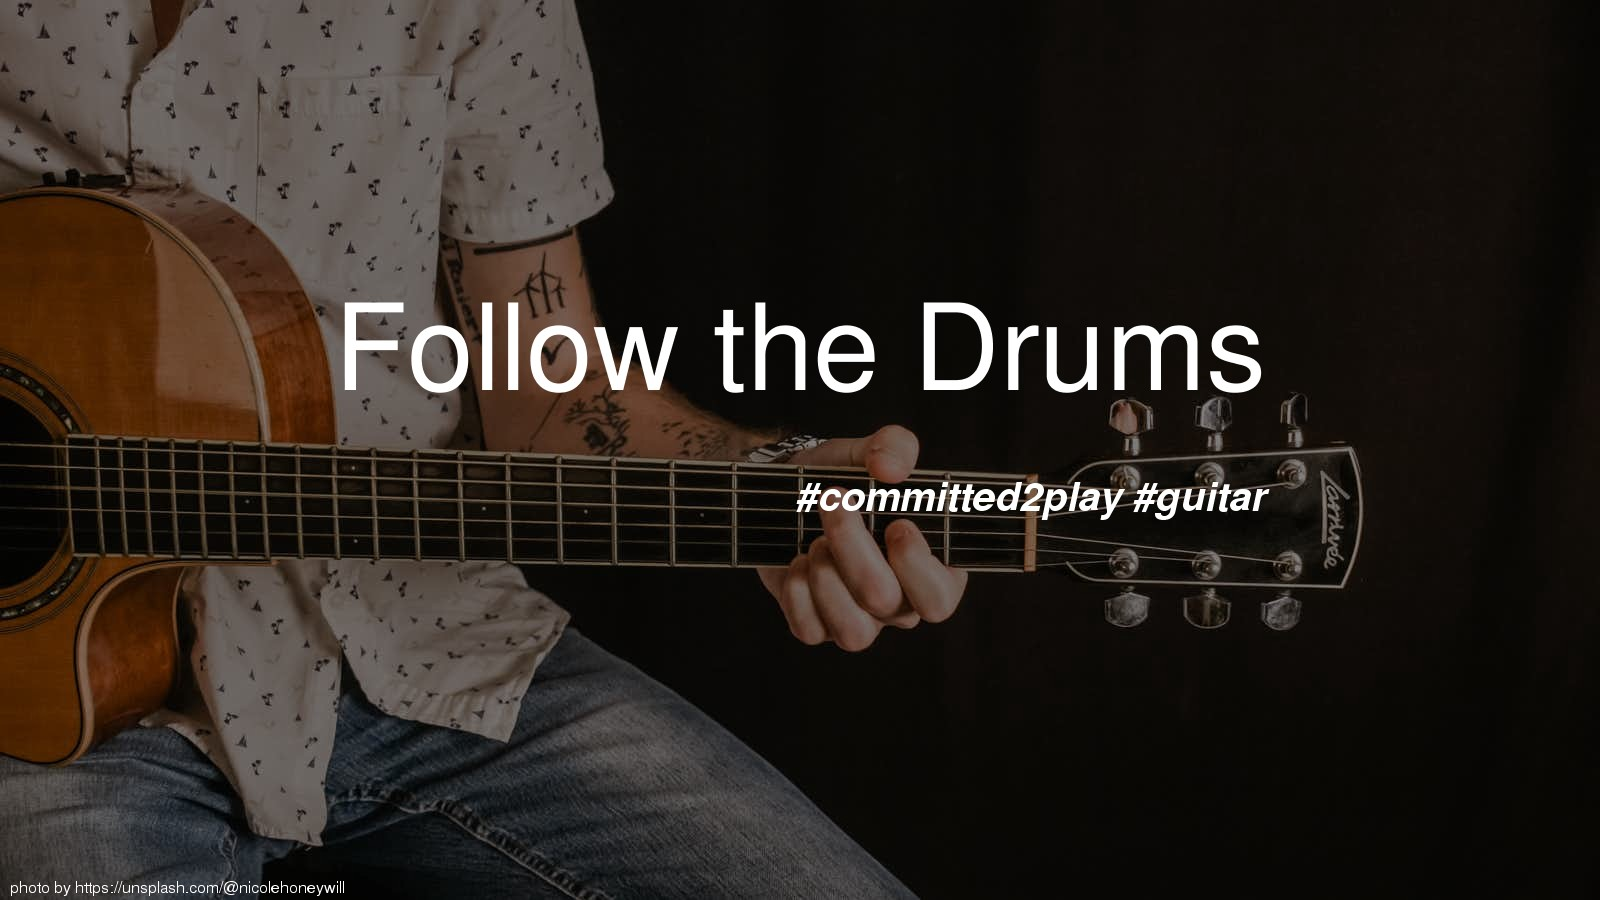 Follow the Drums